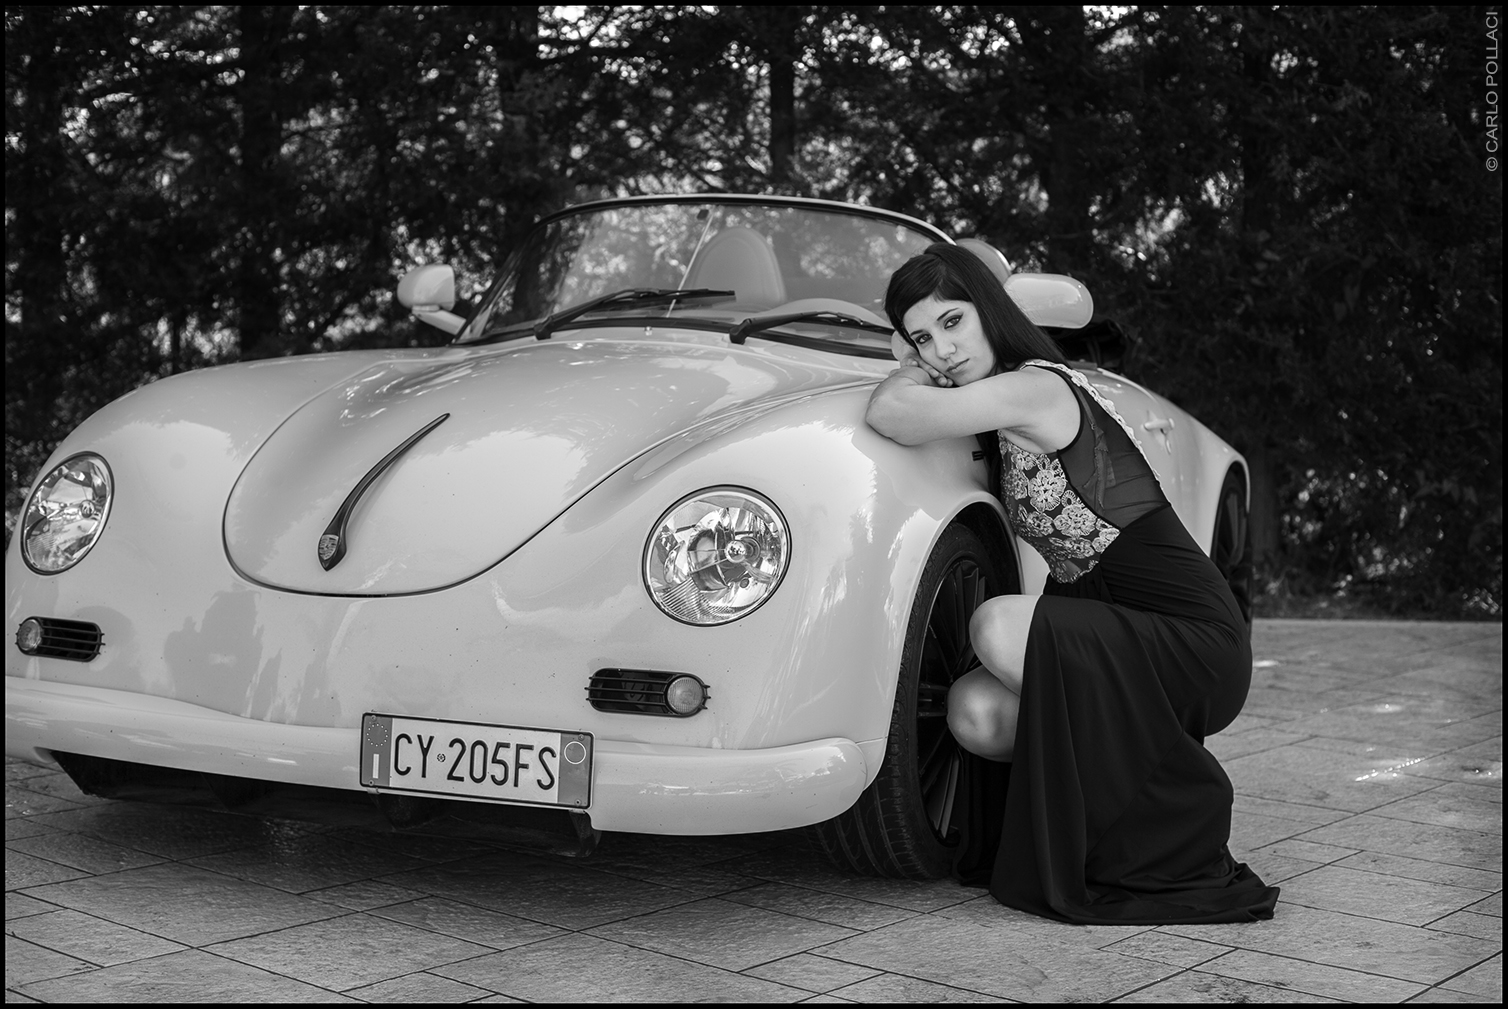 The girl with the Porsche